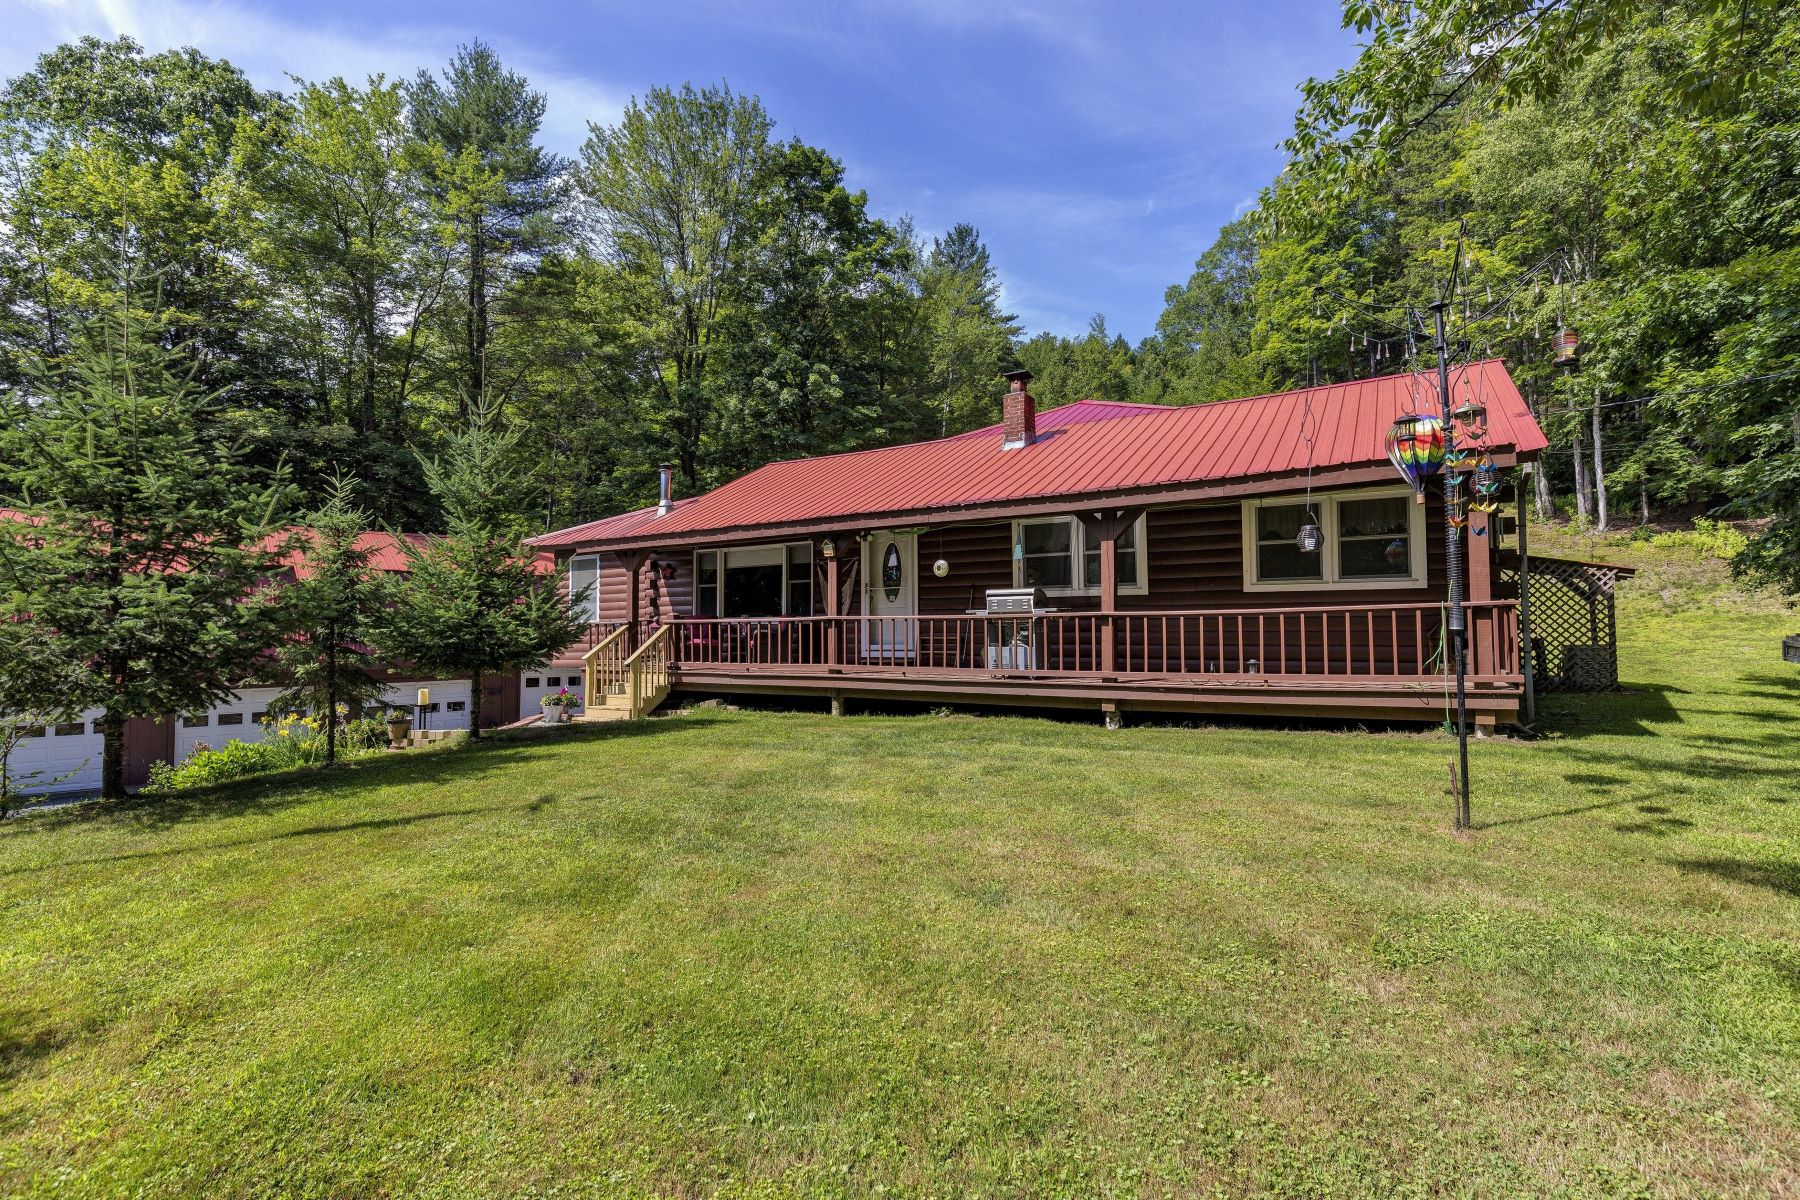 Single Family Home for Sale at Three Bedroom Log Home in Hartford 400 Rustic Rd 75 Hartford, Vermont 05001 United States